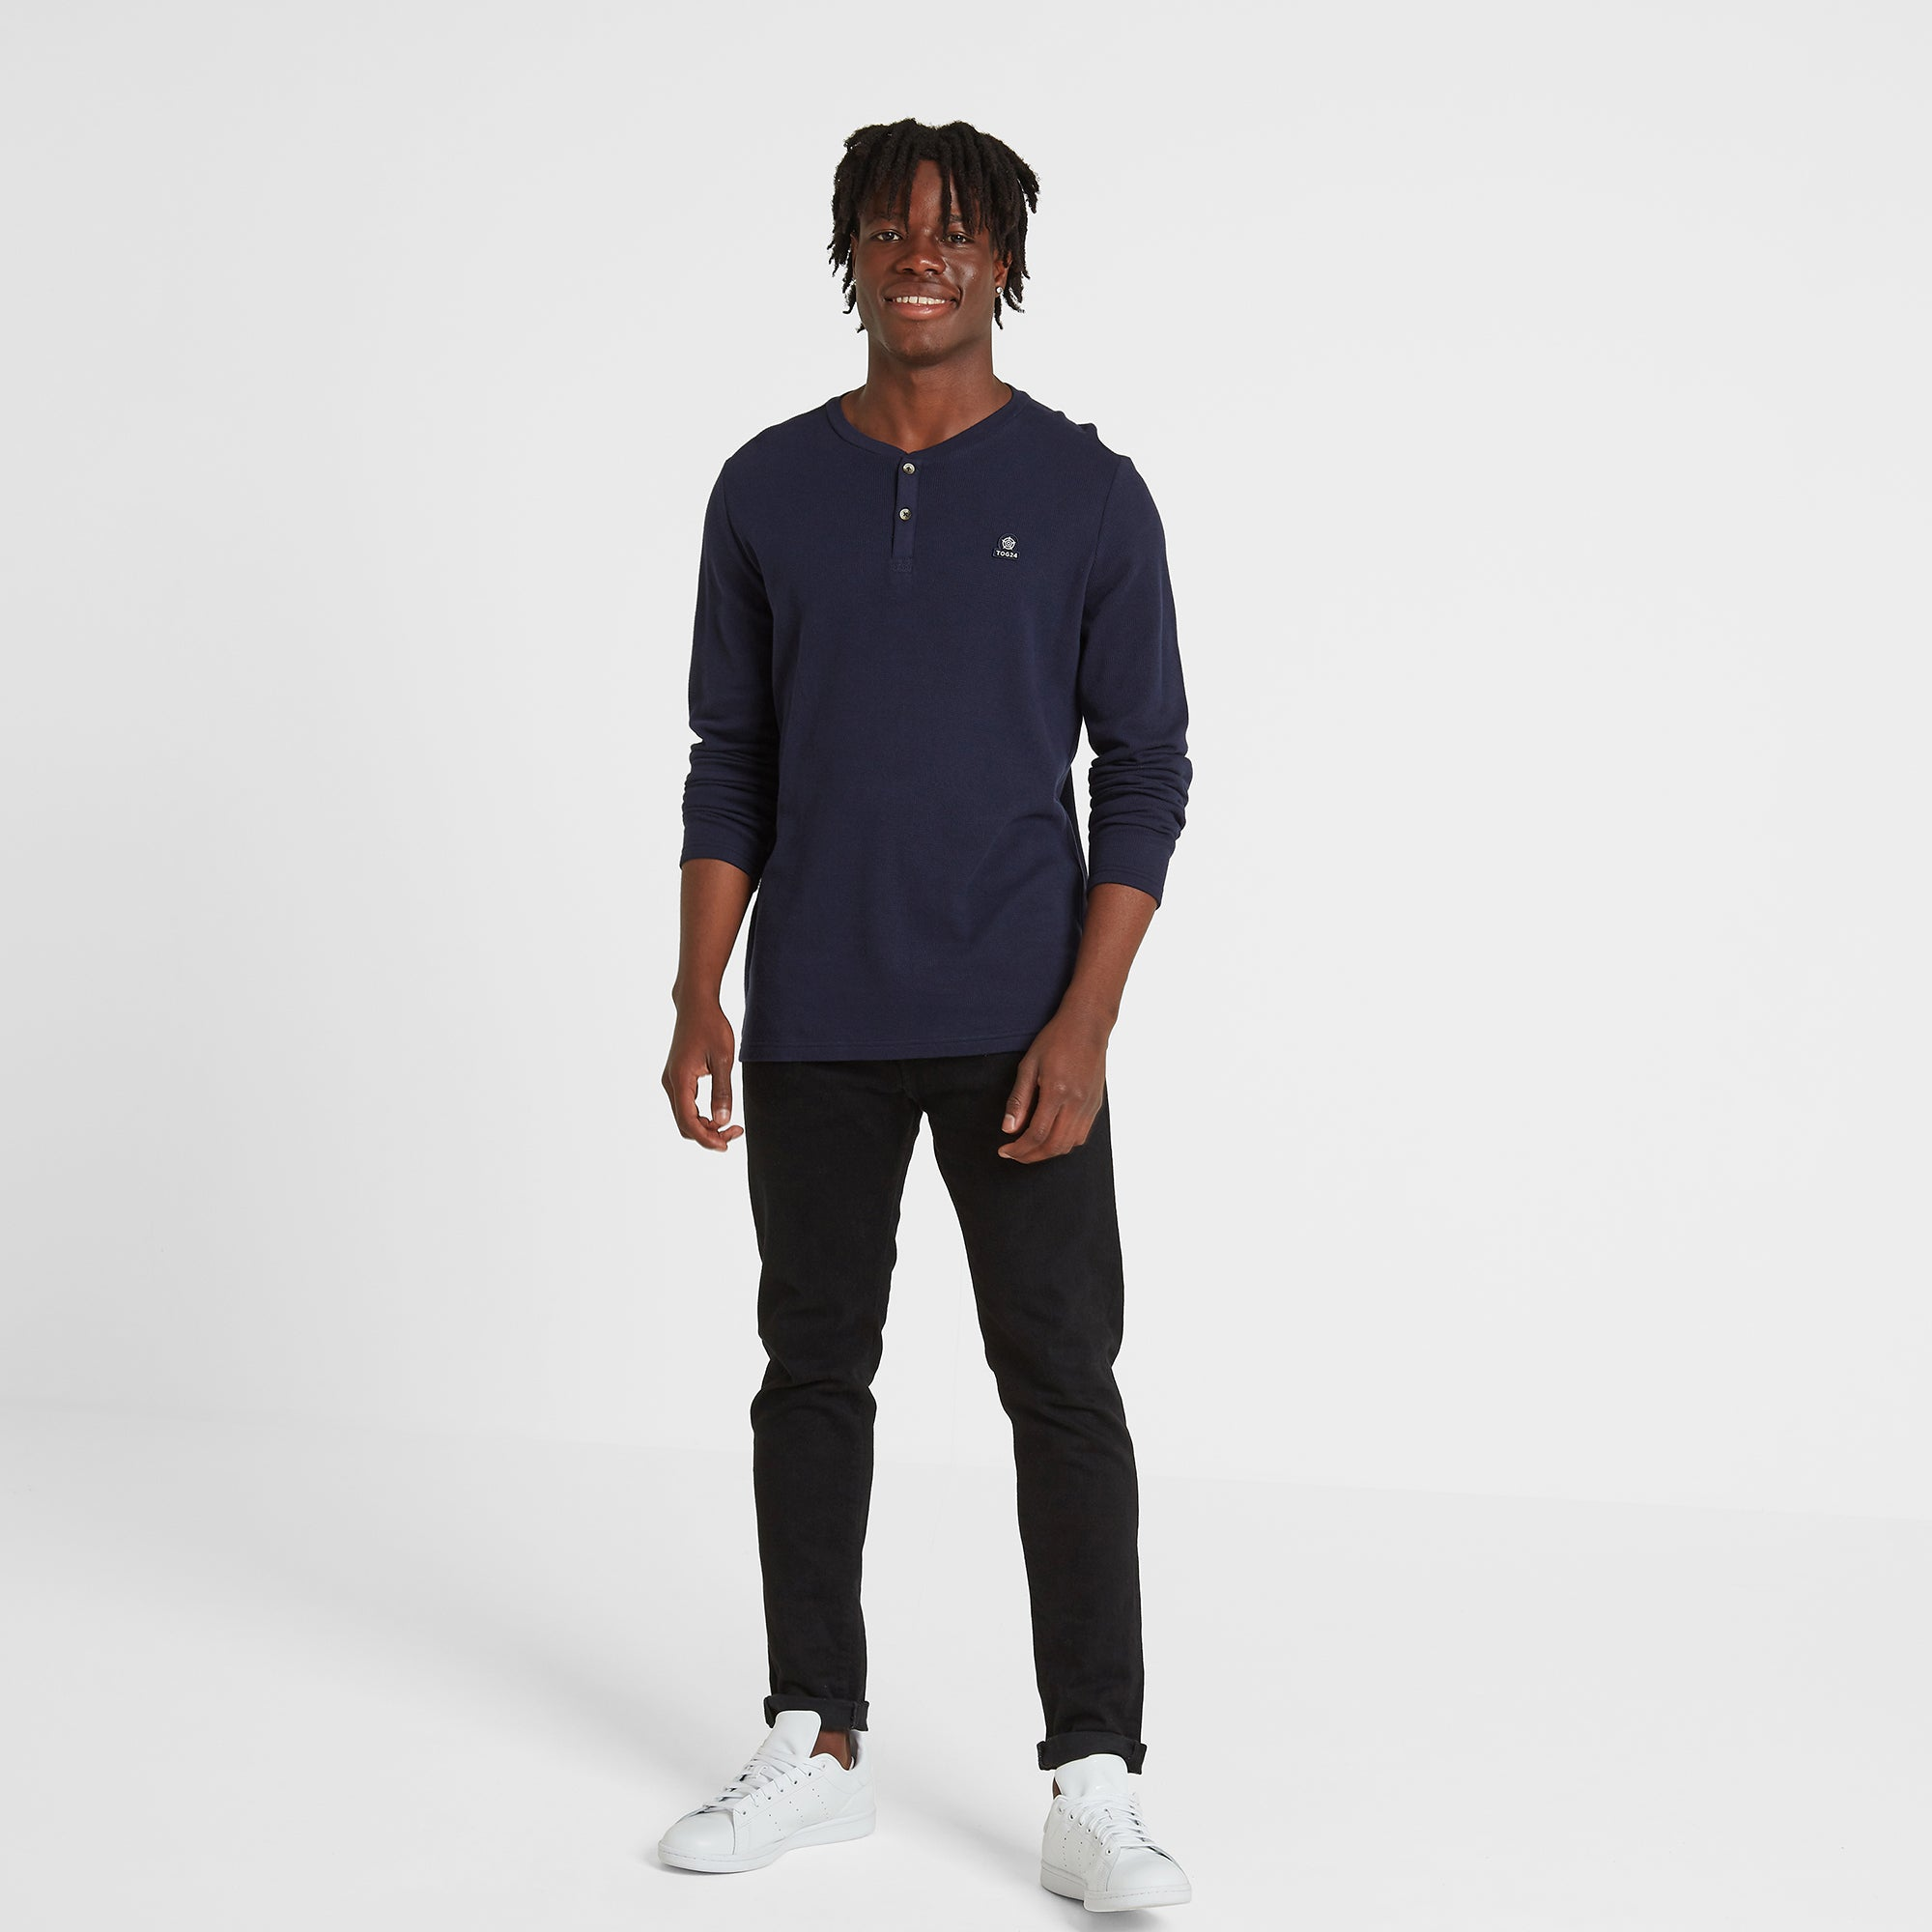 Gowdall Mens Grandad Collar T-Shirt - Navy